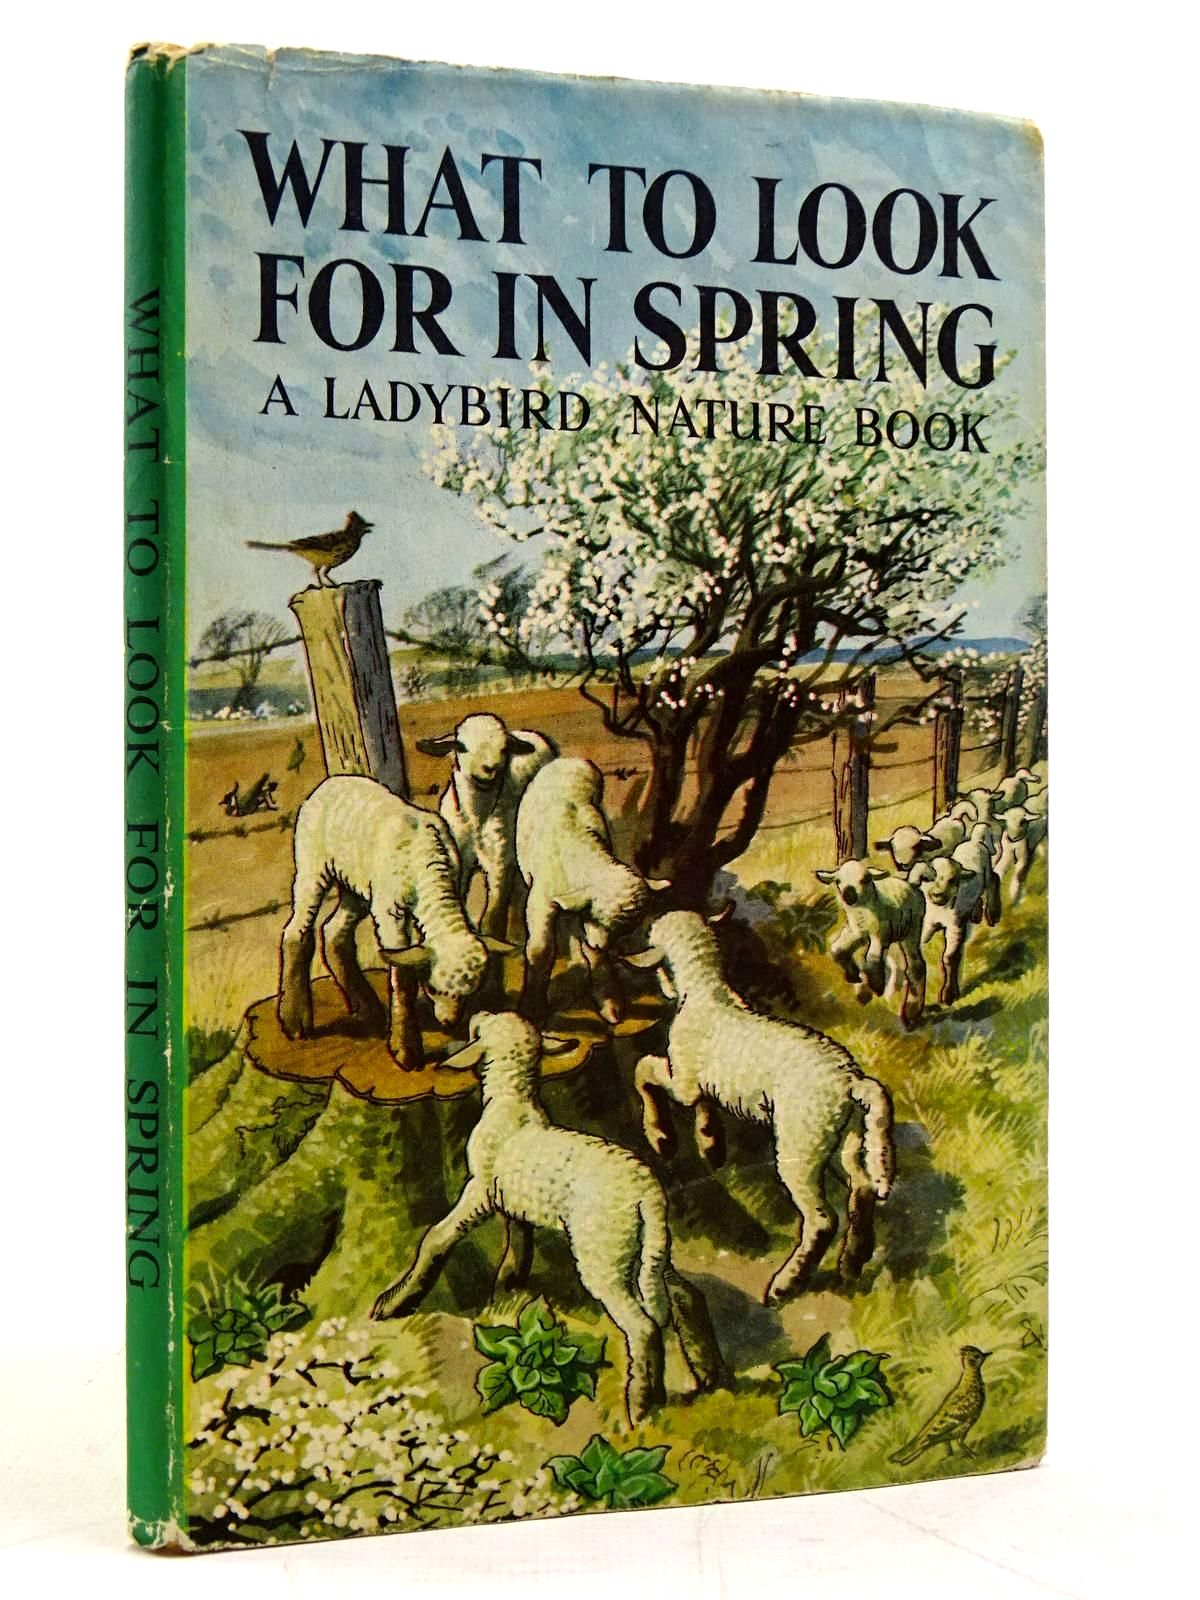 Photo of WHAT TO LOOK FOR IN SPRING written by Watson, E.L. Grant illustrated by Tunnicliffe, C.F. published by Wills & Hepworth Ltd. (STOCK CODE: 2131532)  for sale by Stella & Rose's Books